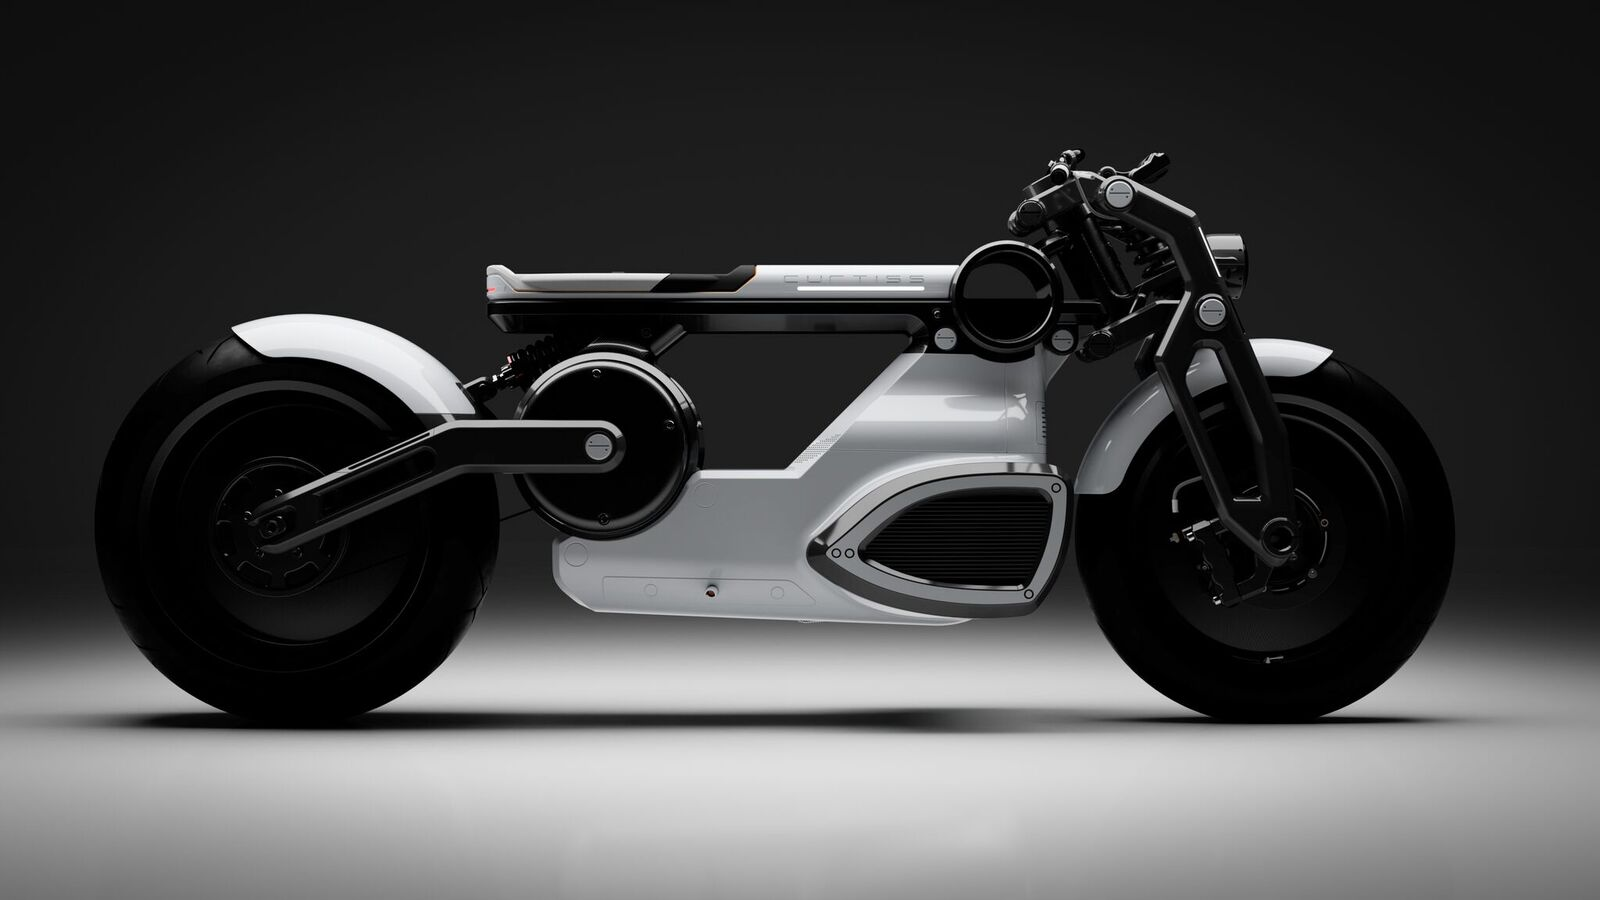 Curtiss Motorcycle Company - Zeus - Cafe